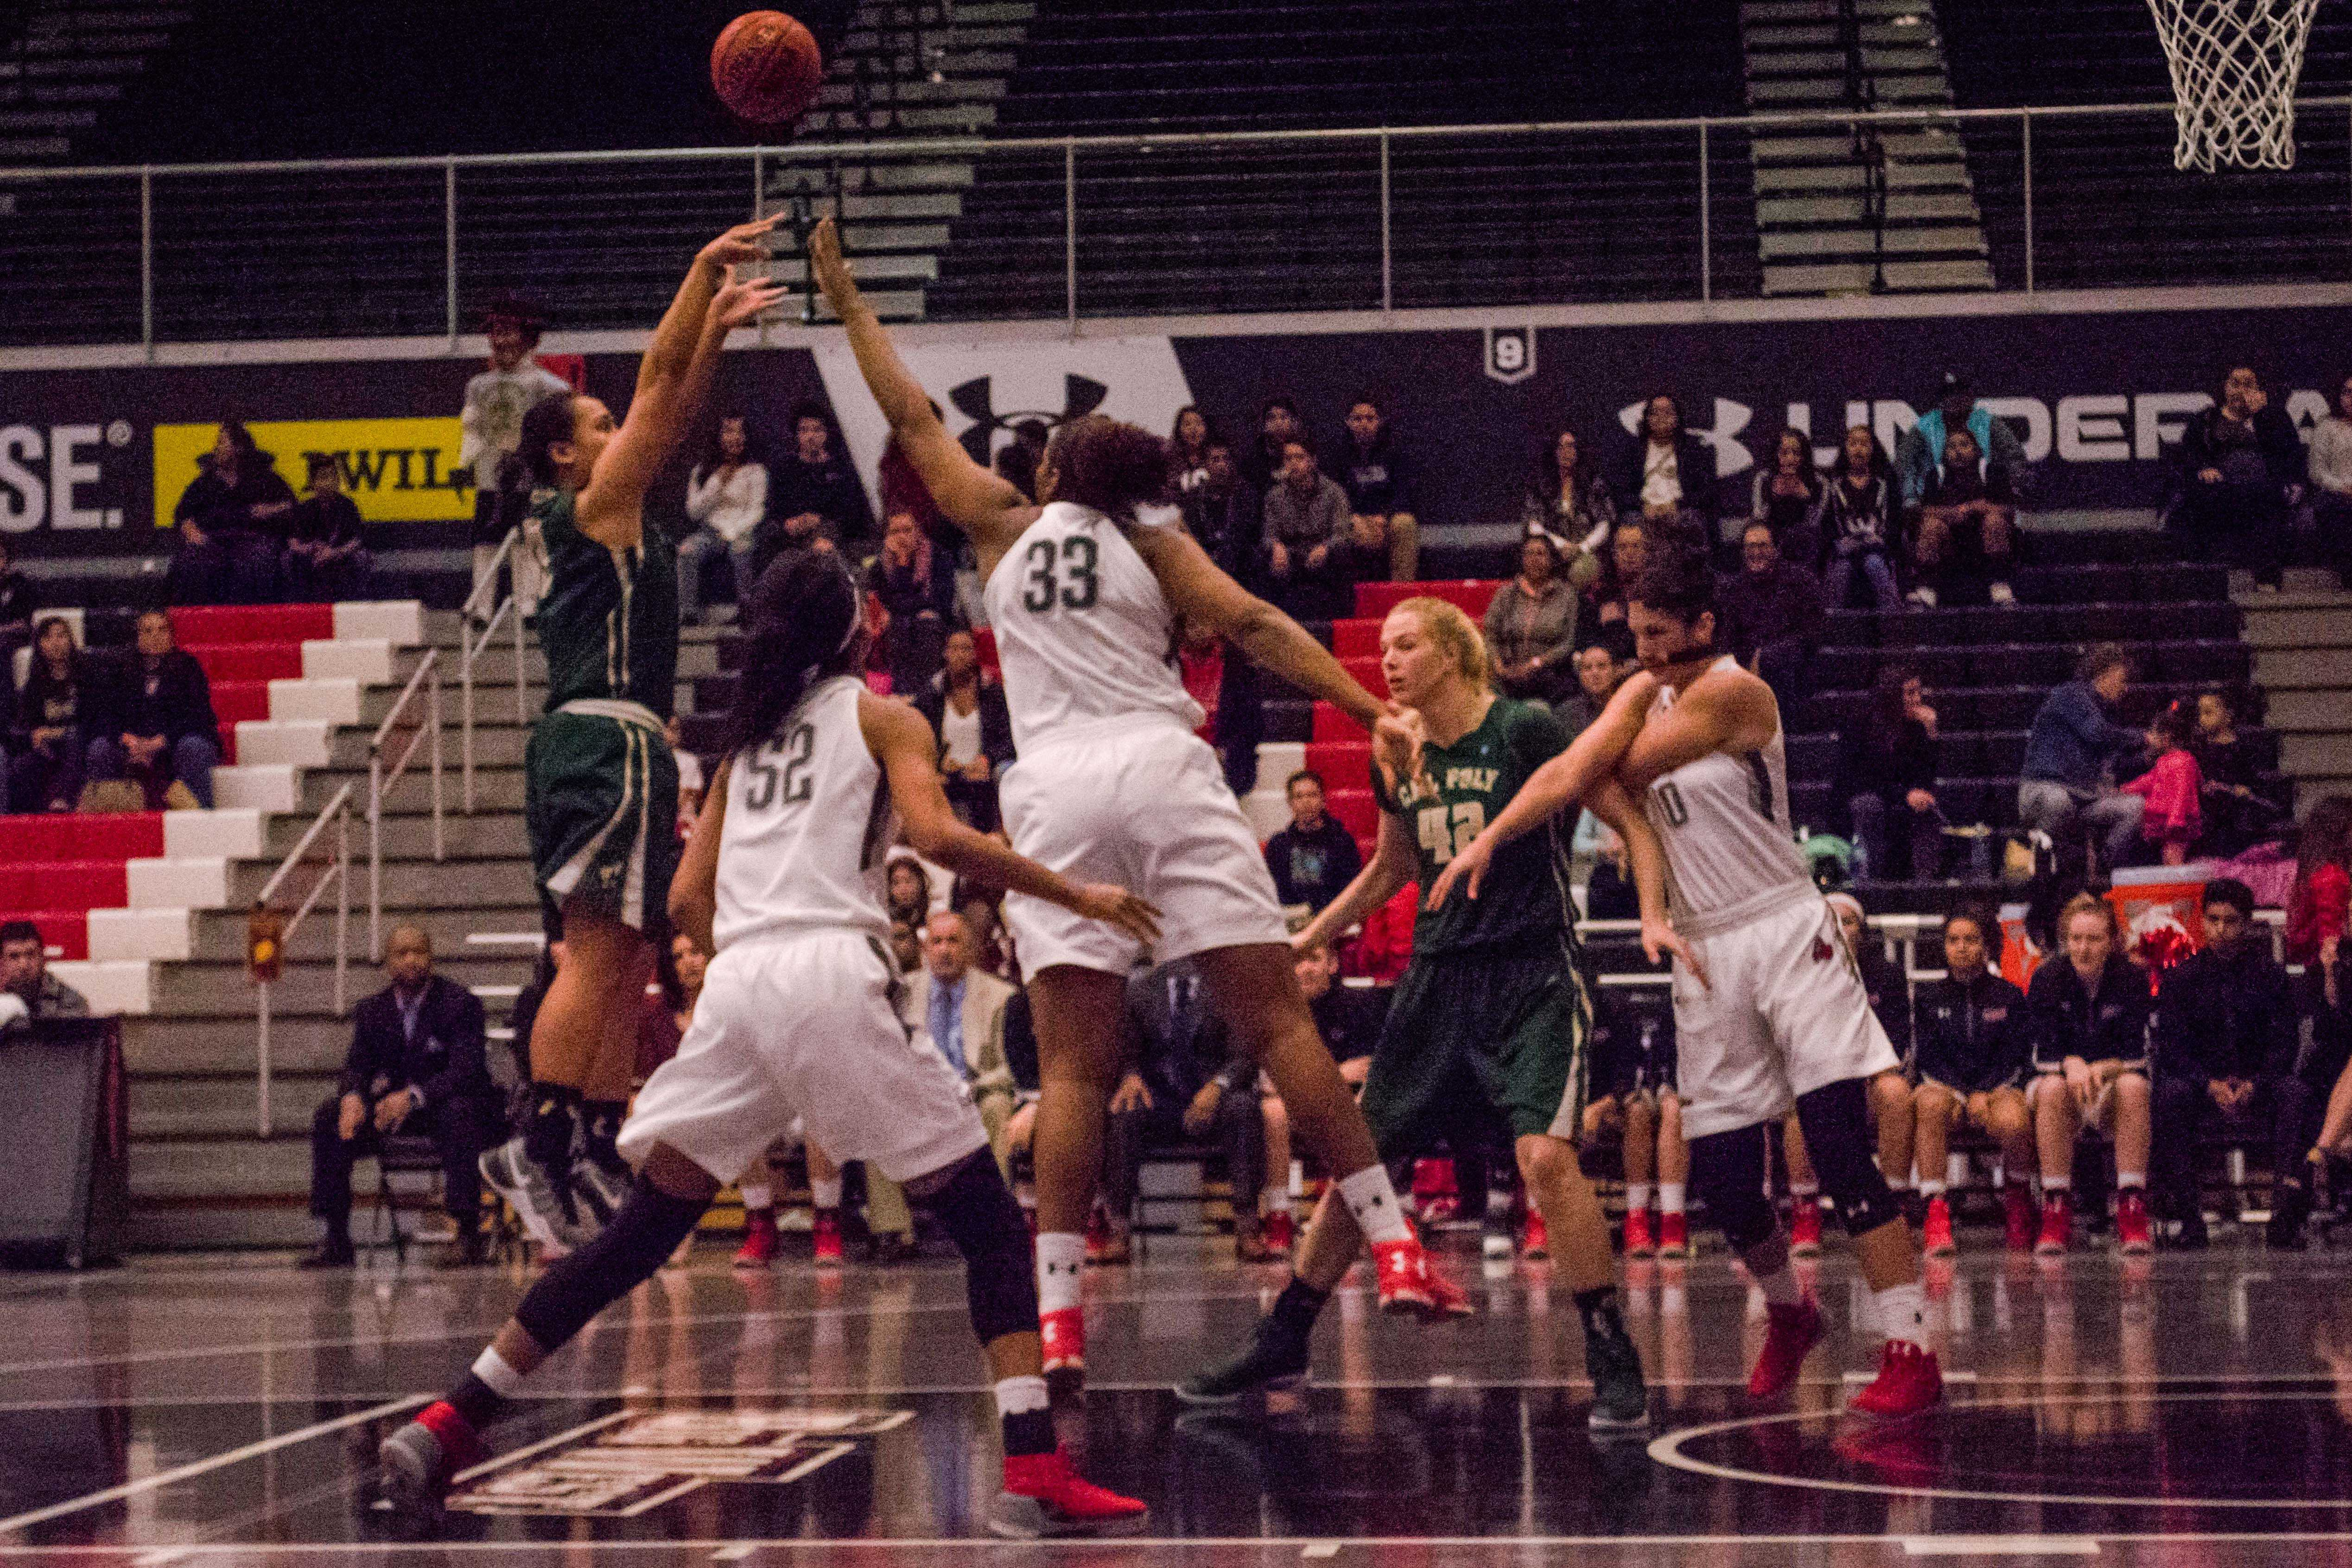 CSUN's women's basketball team defends as Cal Poly's Dynn Leaupepe (far left, junior, number 13) takes a shot. Photo credit: Emily Pierce